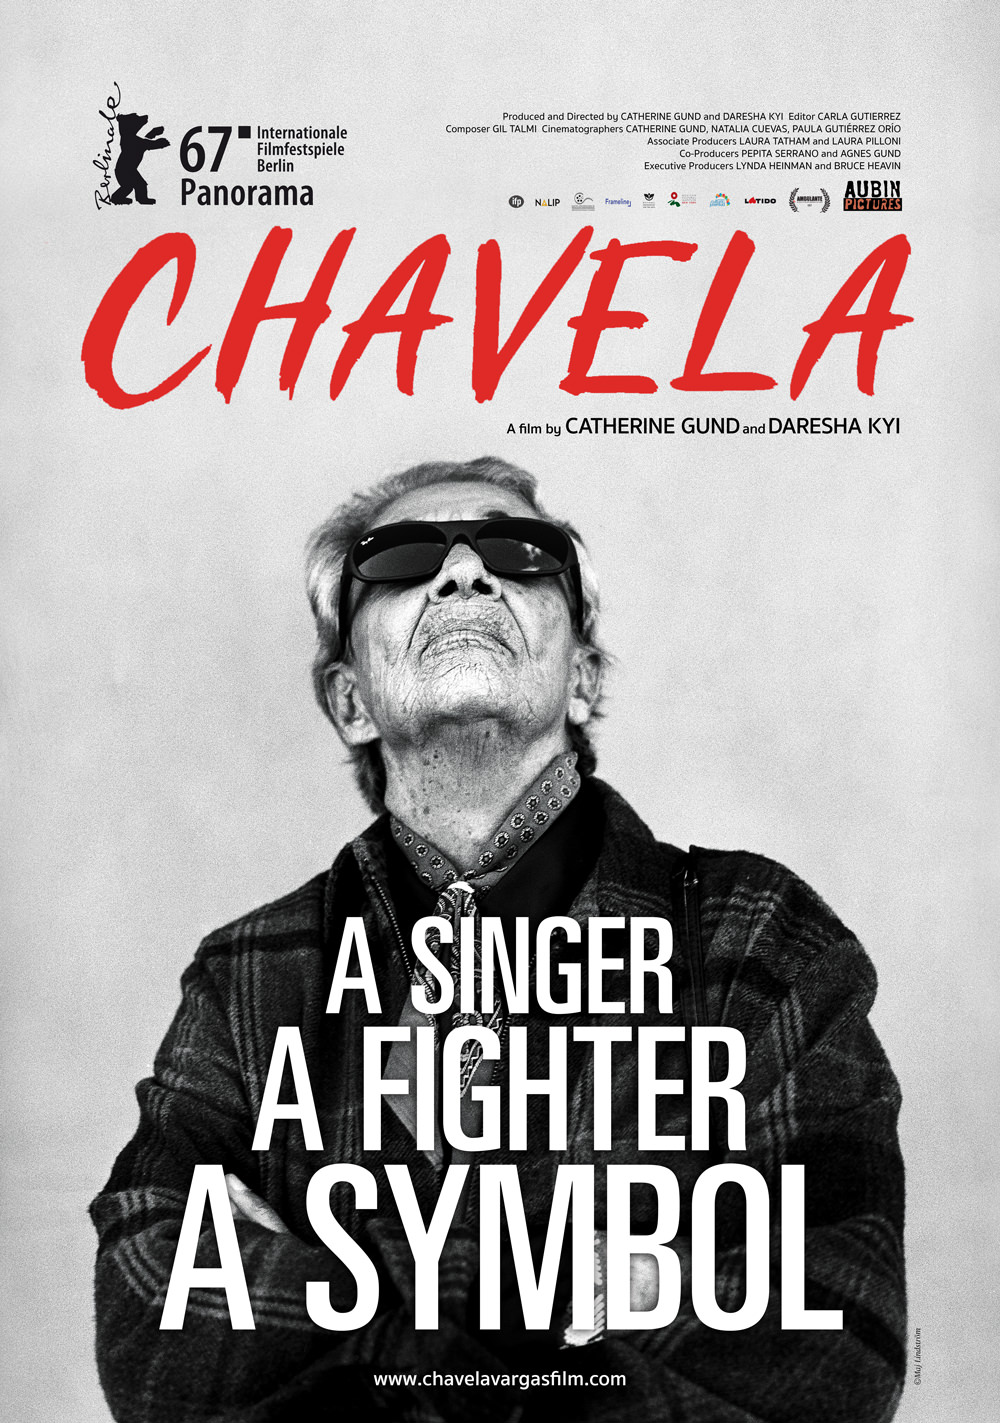 CHAVELA-cartel-int-web1